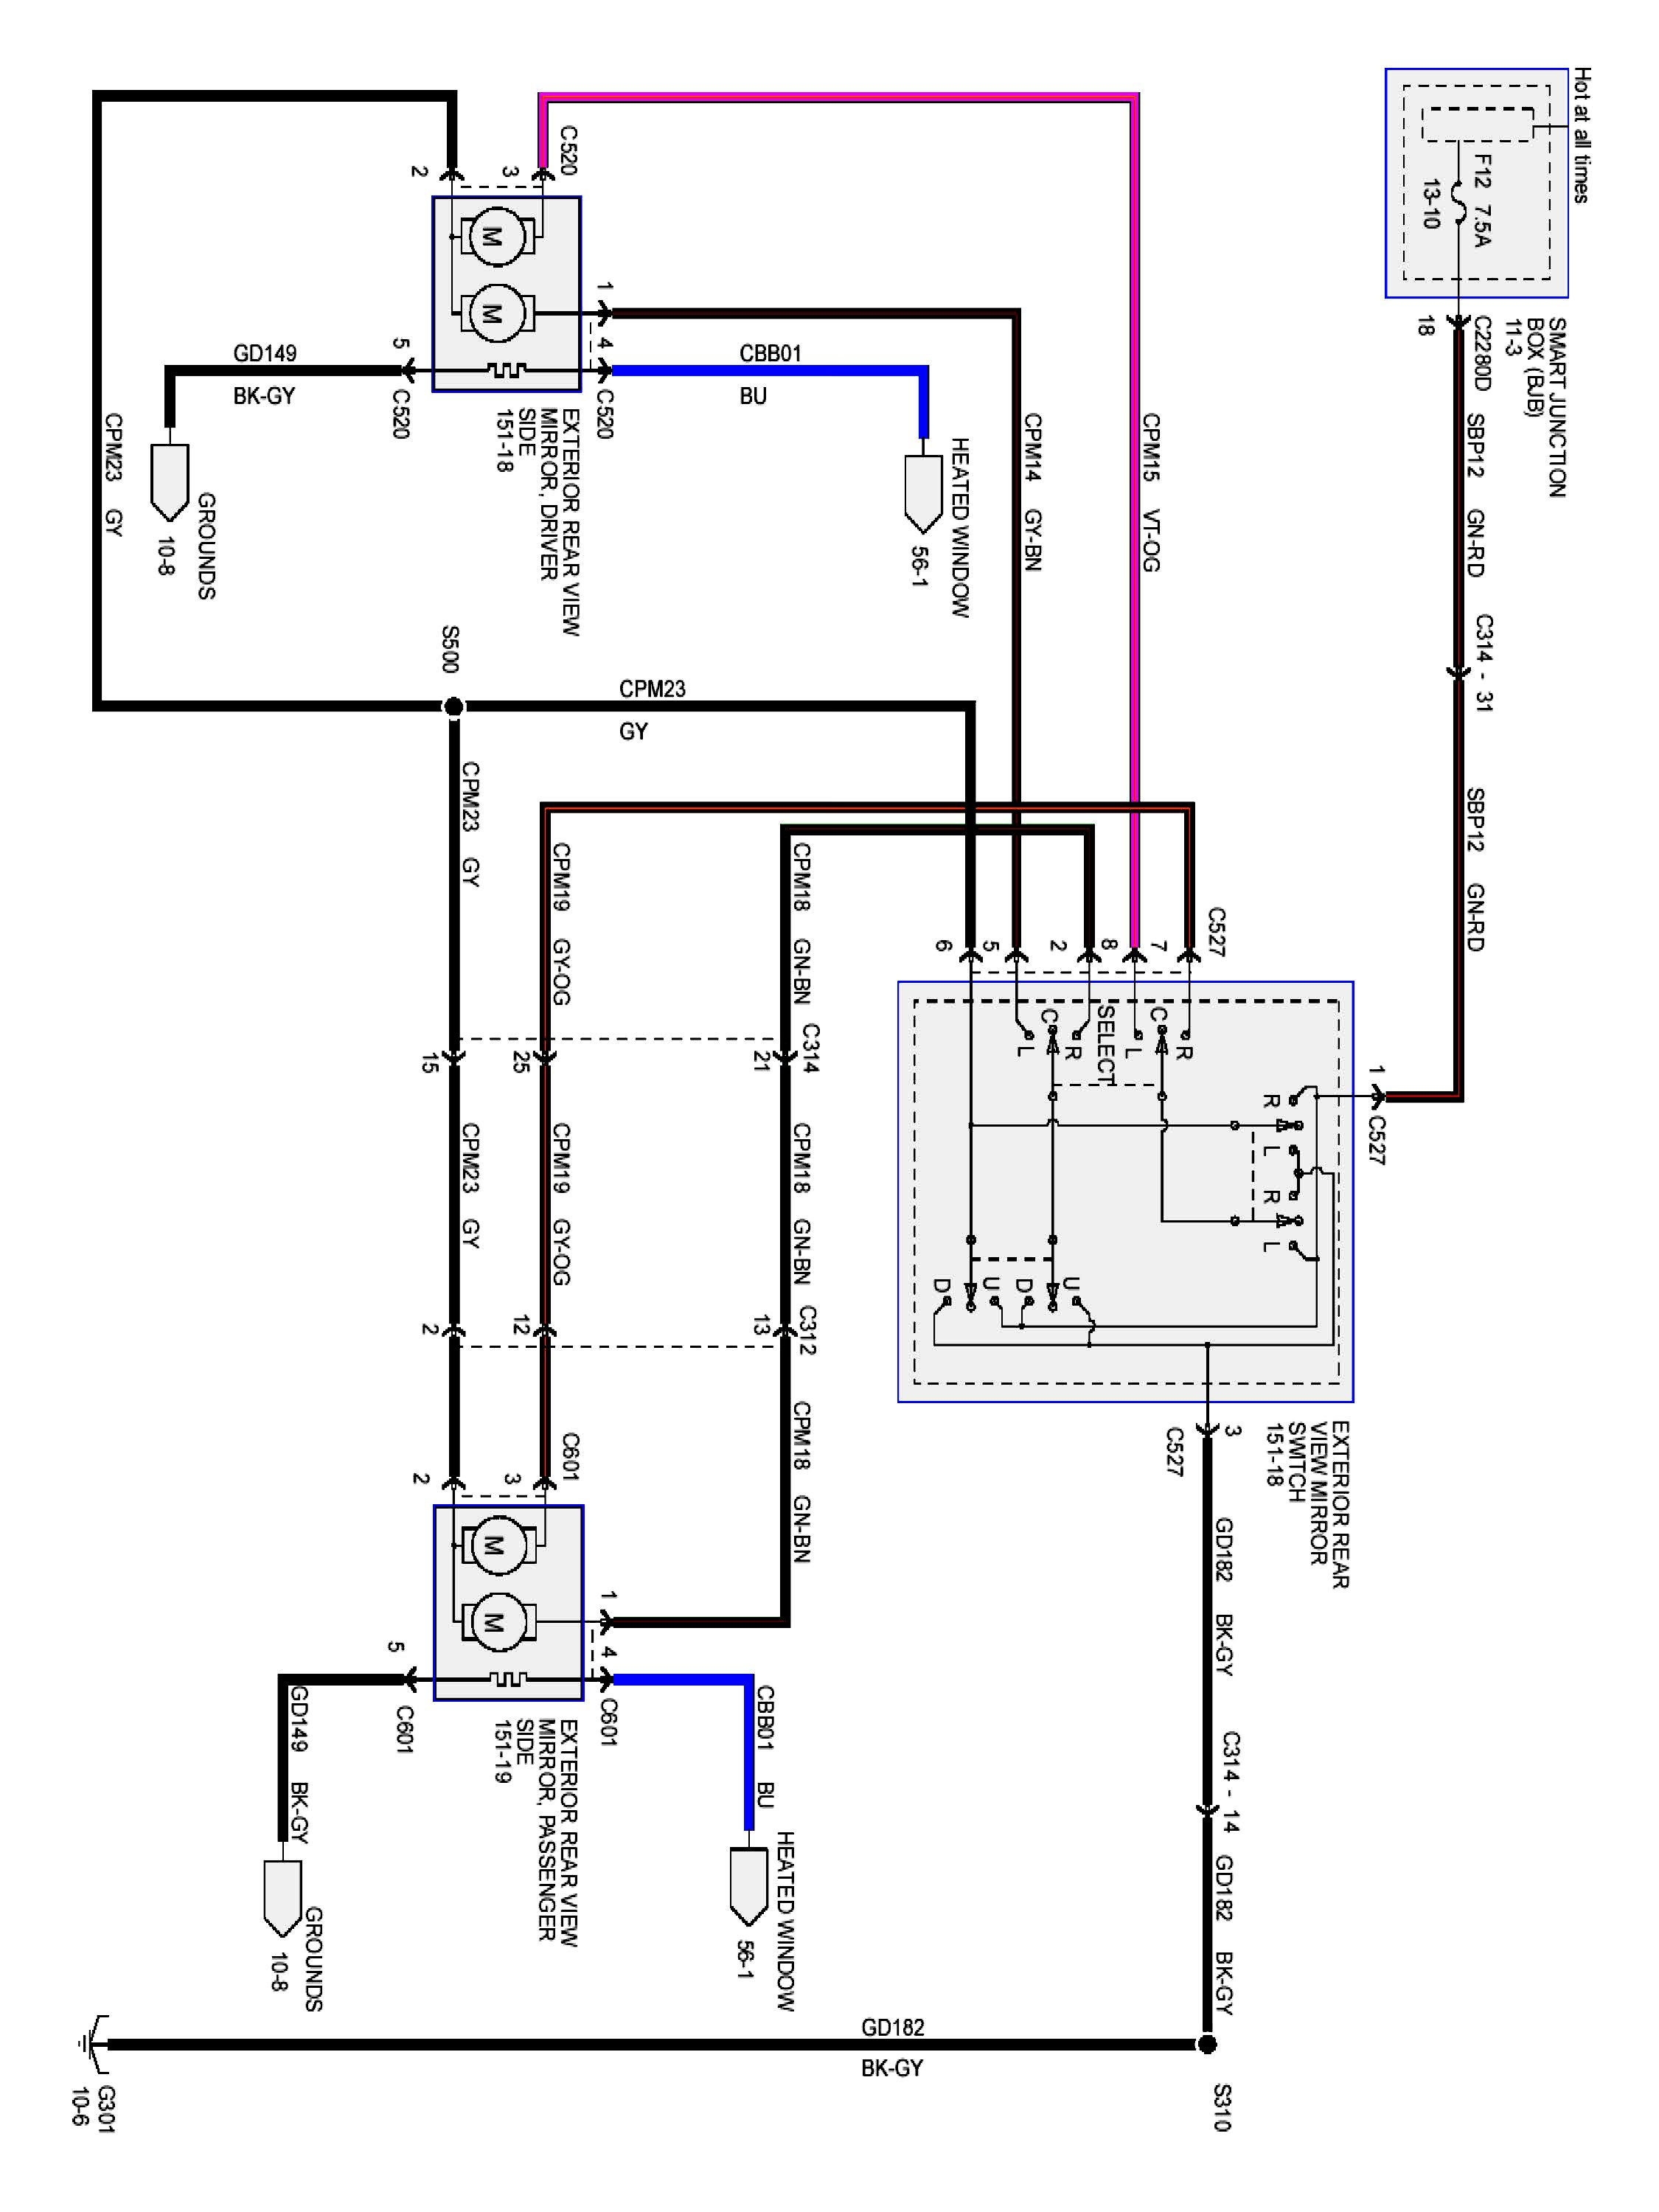 2009 Ford Escape Wiring Diagram from static-cdn.imageservice.cloud